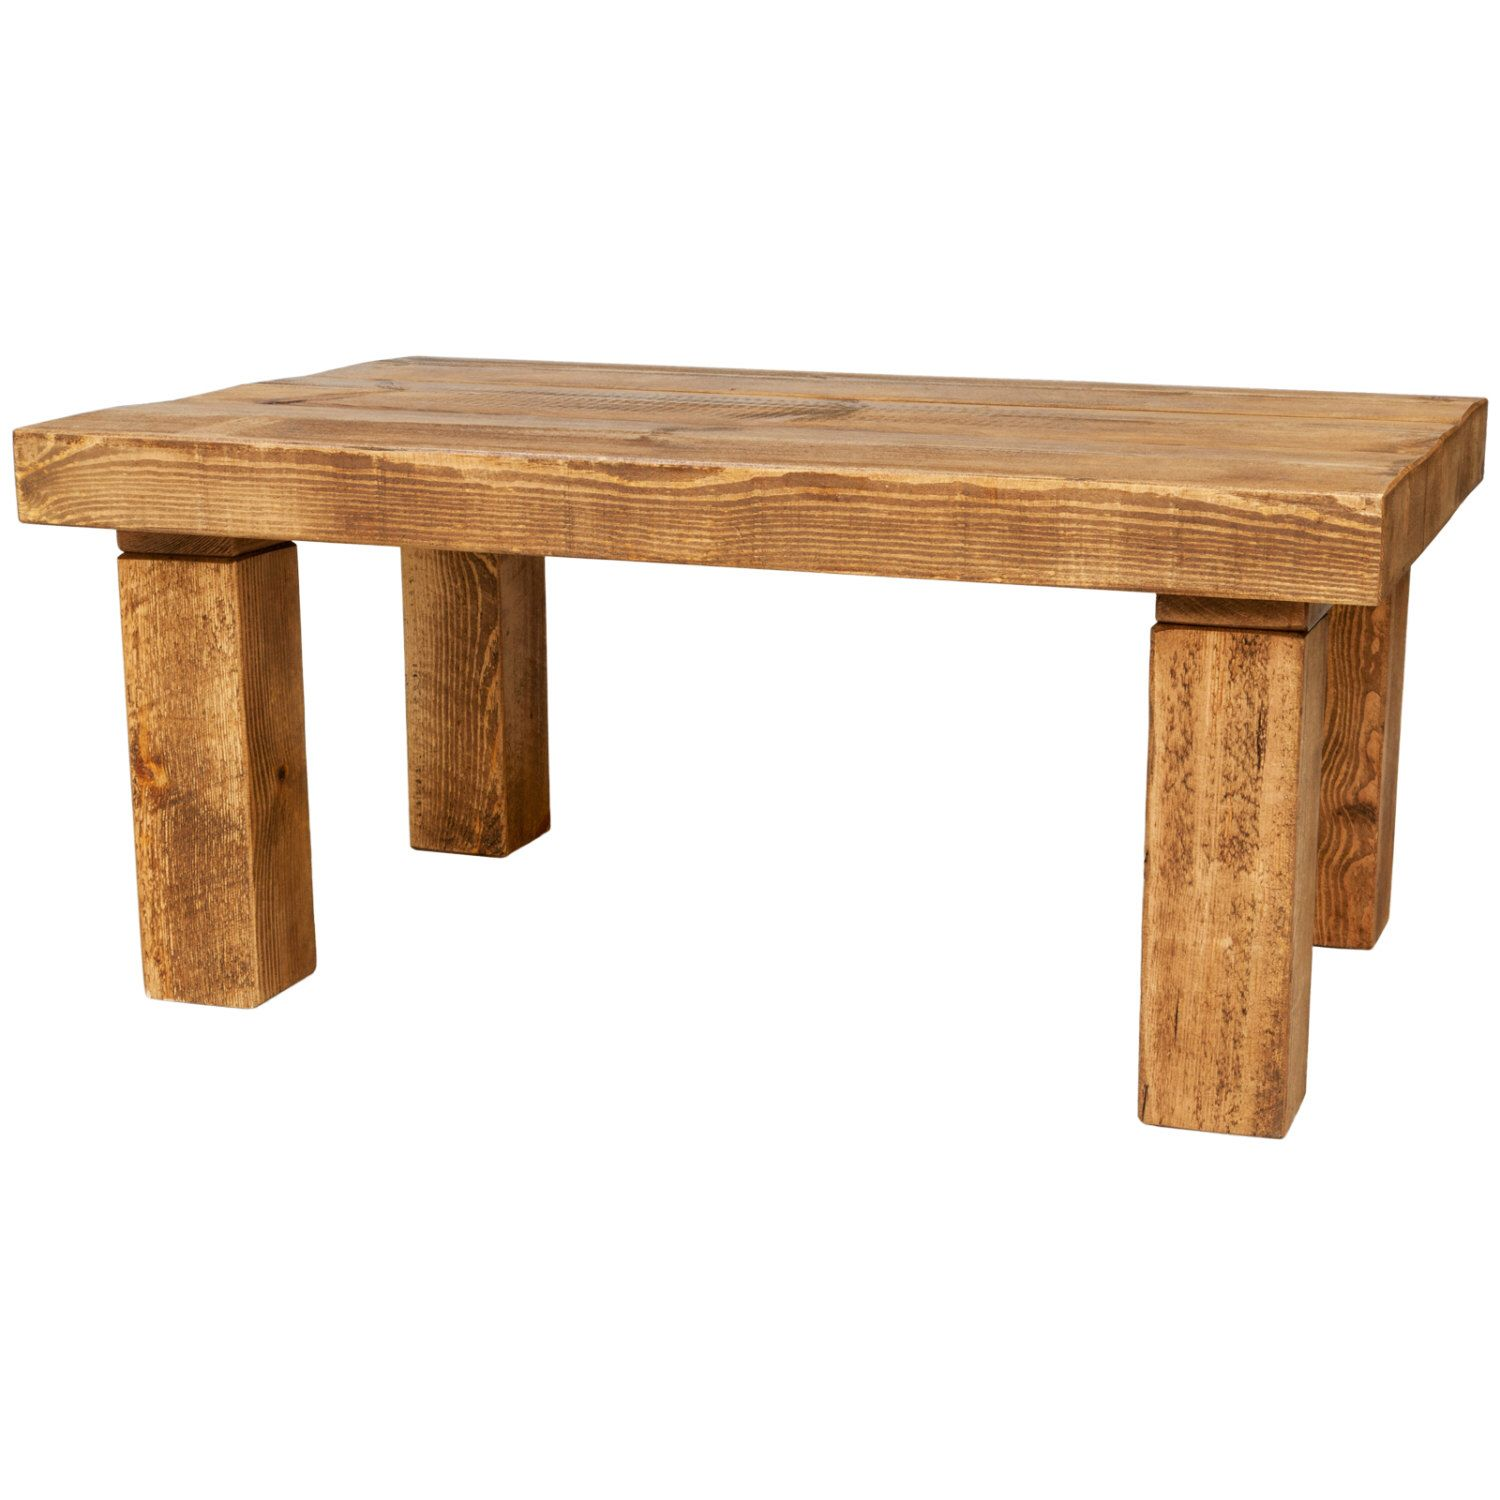 Handmade Chunky Wooden Coffee Table With A Choice Of Diffe Rustic Wax Finish Colours And Sizes